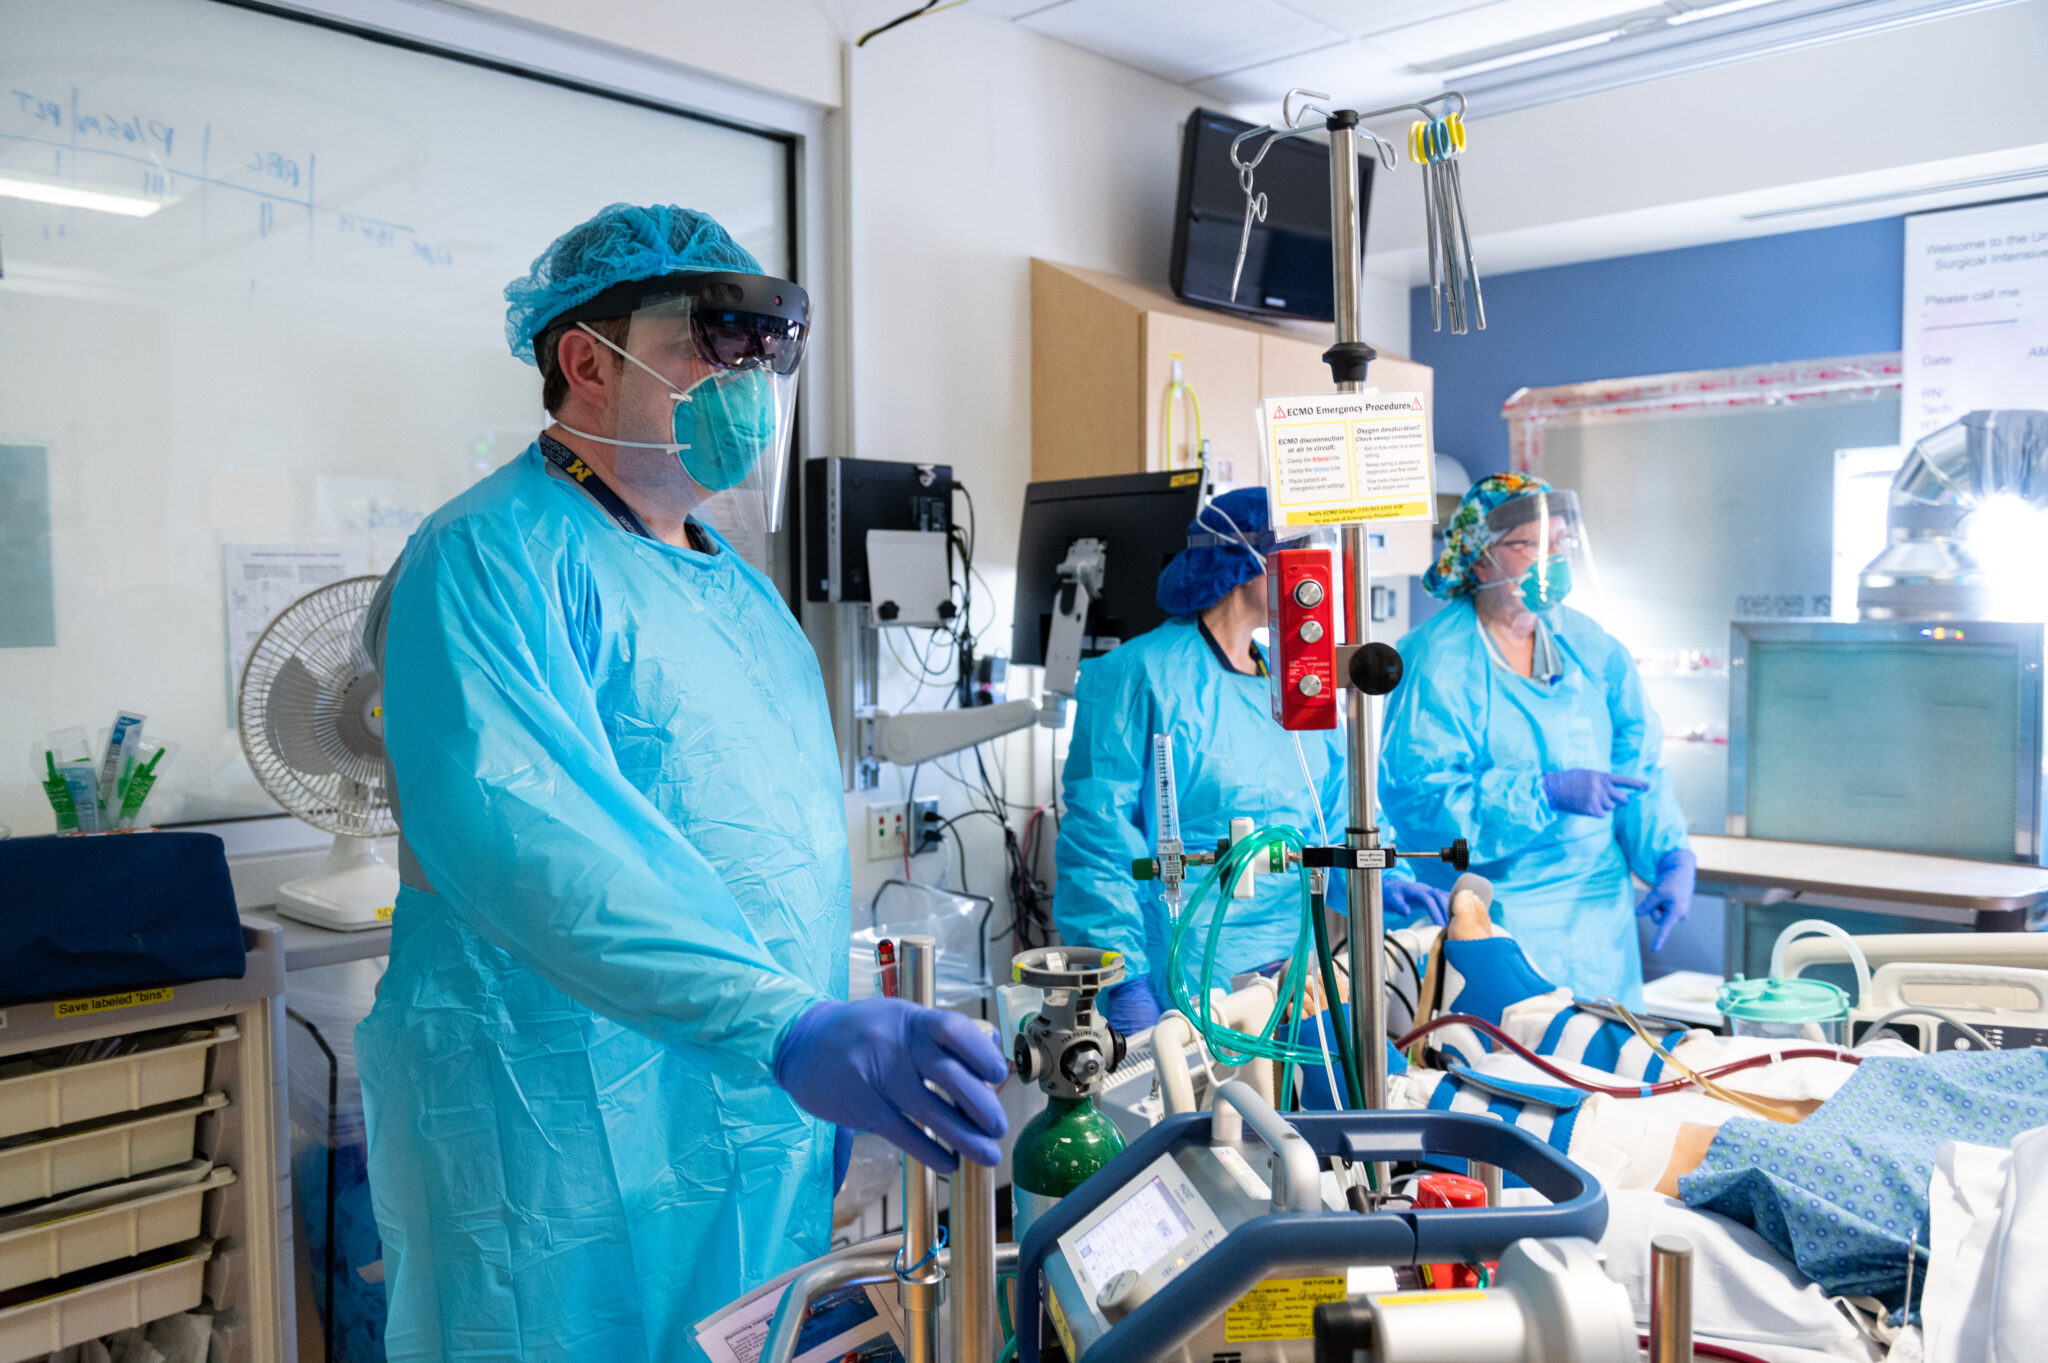 Dr. Cohen and team members conducting virtual rounds with HoloLens2 technology